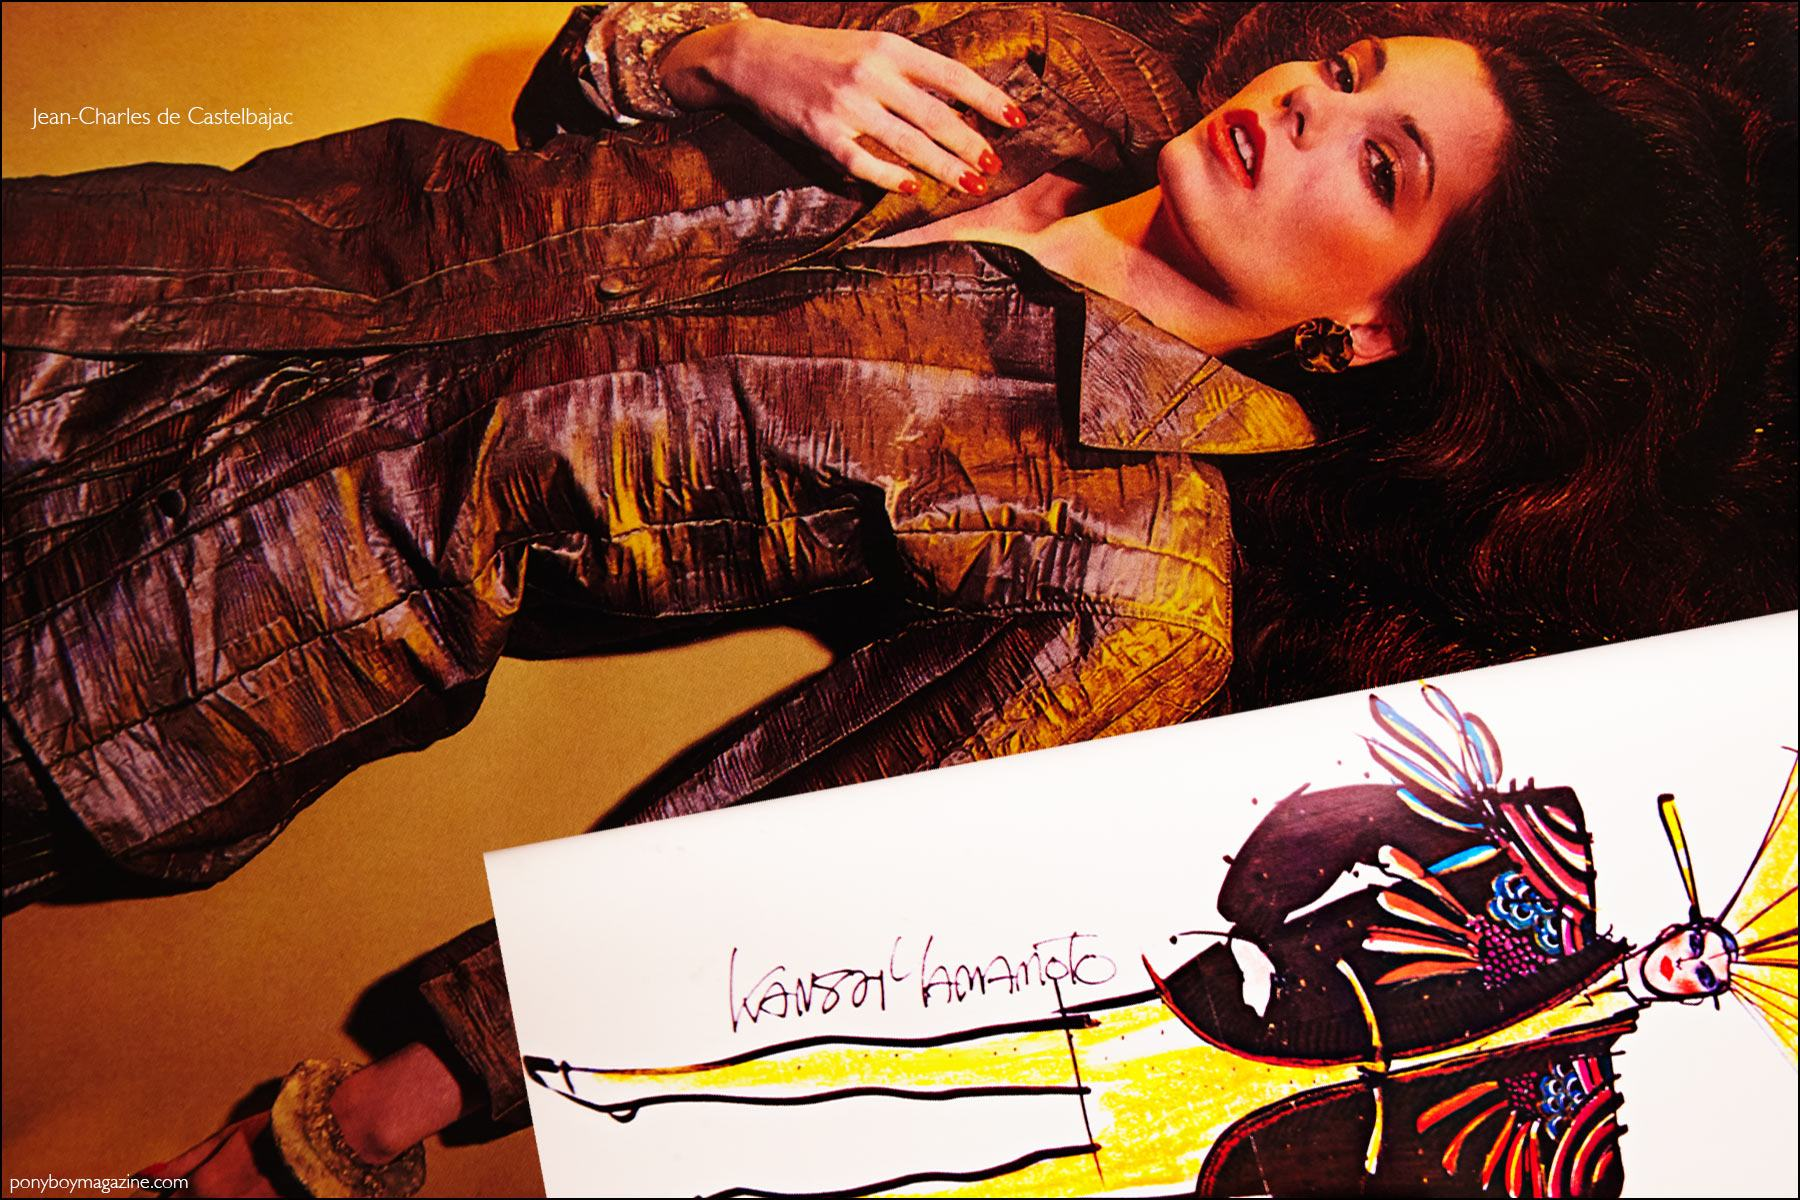 A fashion photograph featuring the design of Jean-Charles de Castelbajac and a fashion sketch by Kansai Yamamoto, featured in the book Fashion: 2001 by Lucille Khornak. Ponyboy magazine NY.